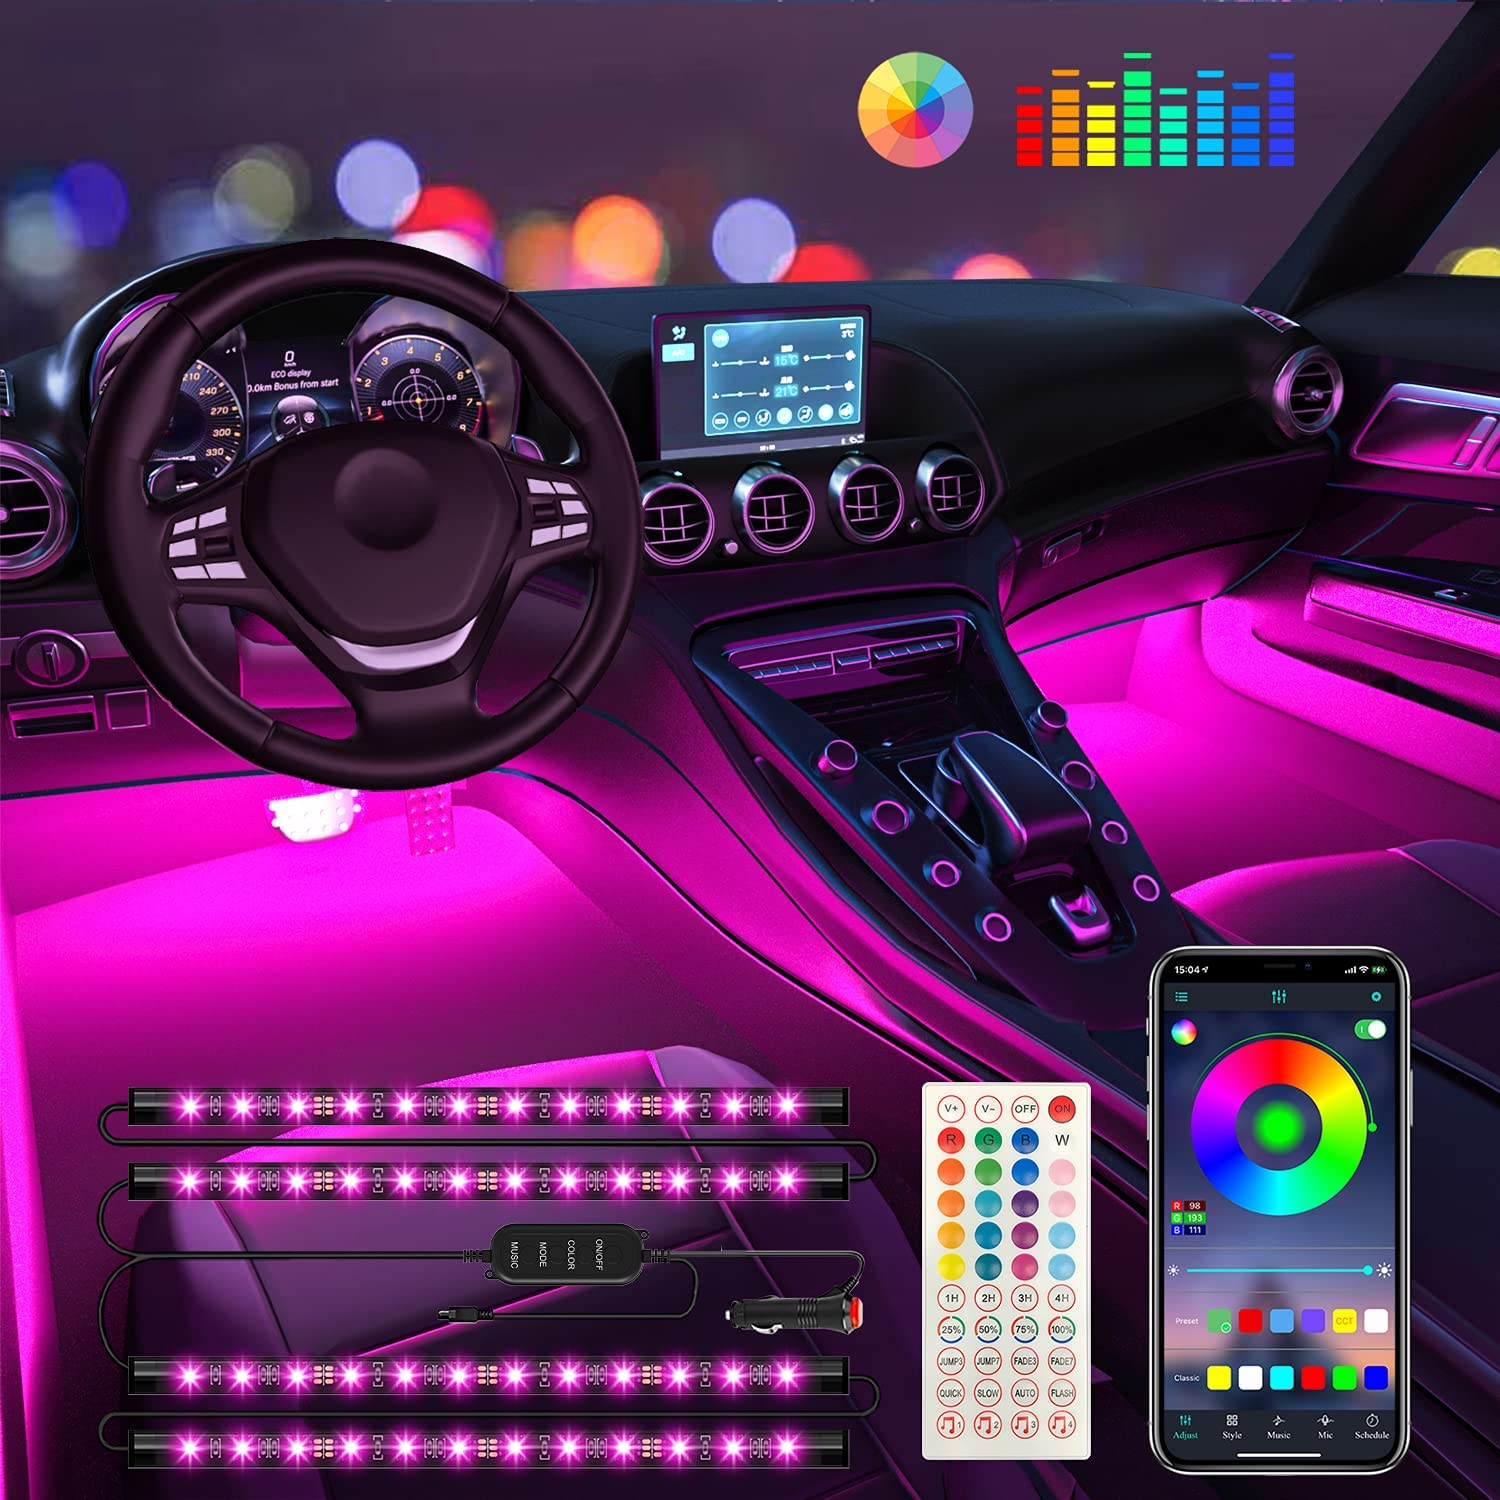 Interior Car Lights Keepsmile Car Accessories Car Led Lights APP Control with Remote Music Sync Color Change RGB Under Dash Car Lighting with Car Charger 12V 2A LED Lights for Car (RGB)